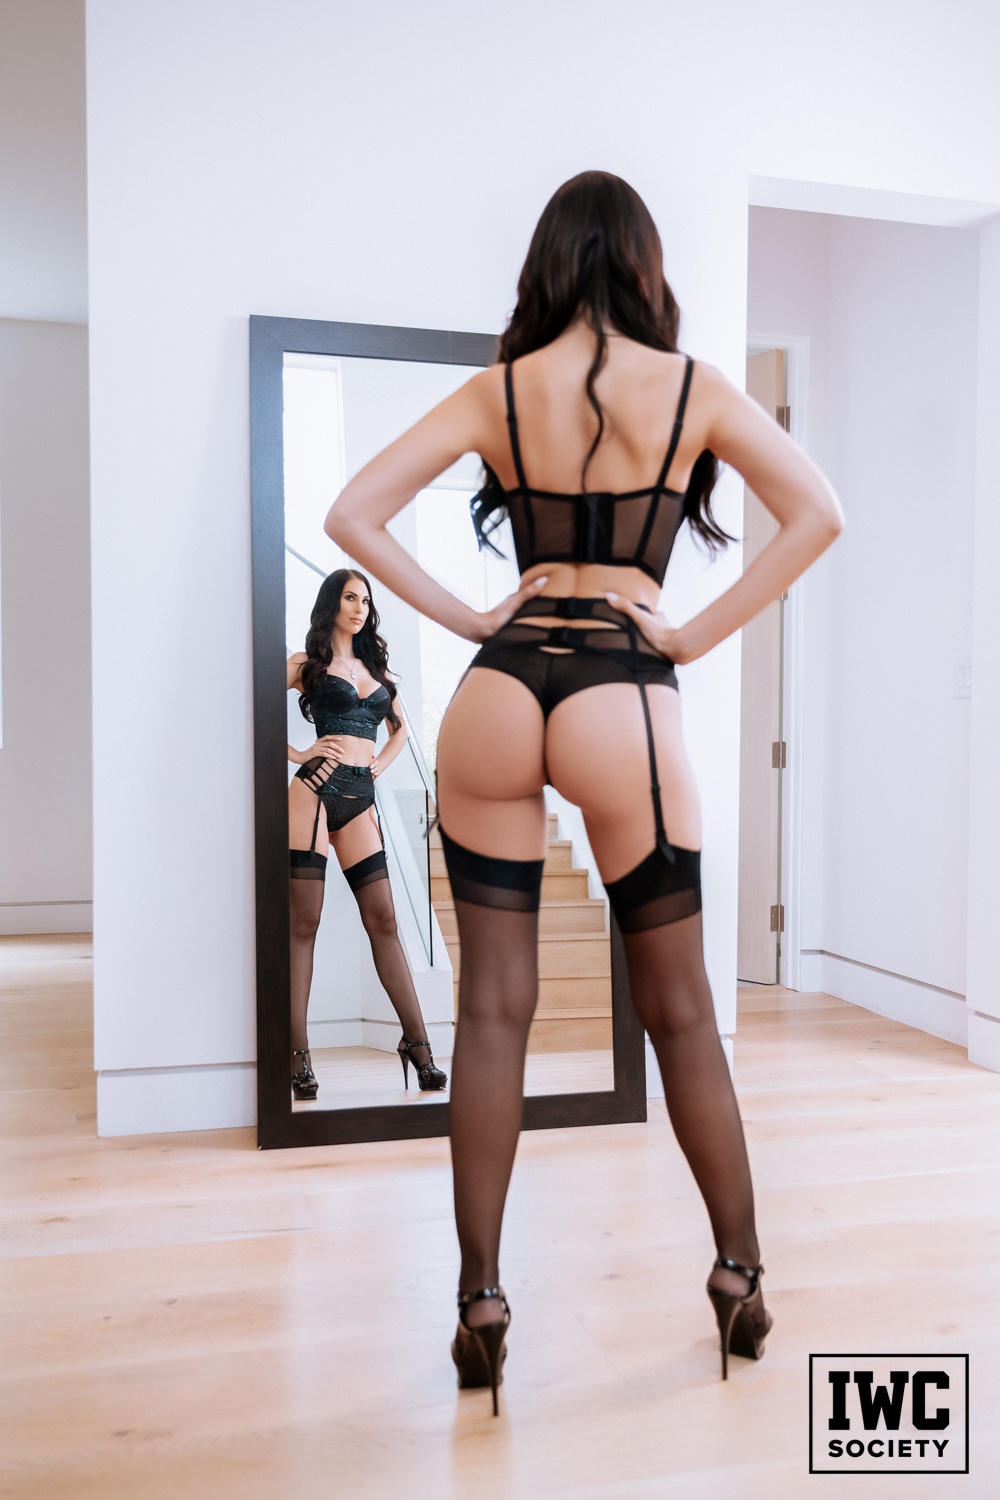 Princess Ashley looking in mirror in stockings and thong